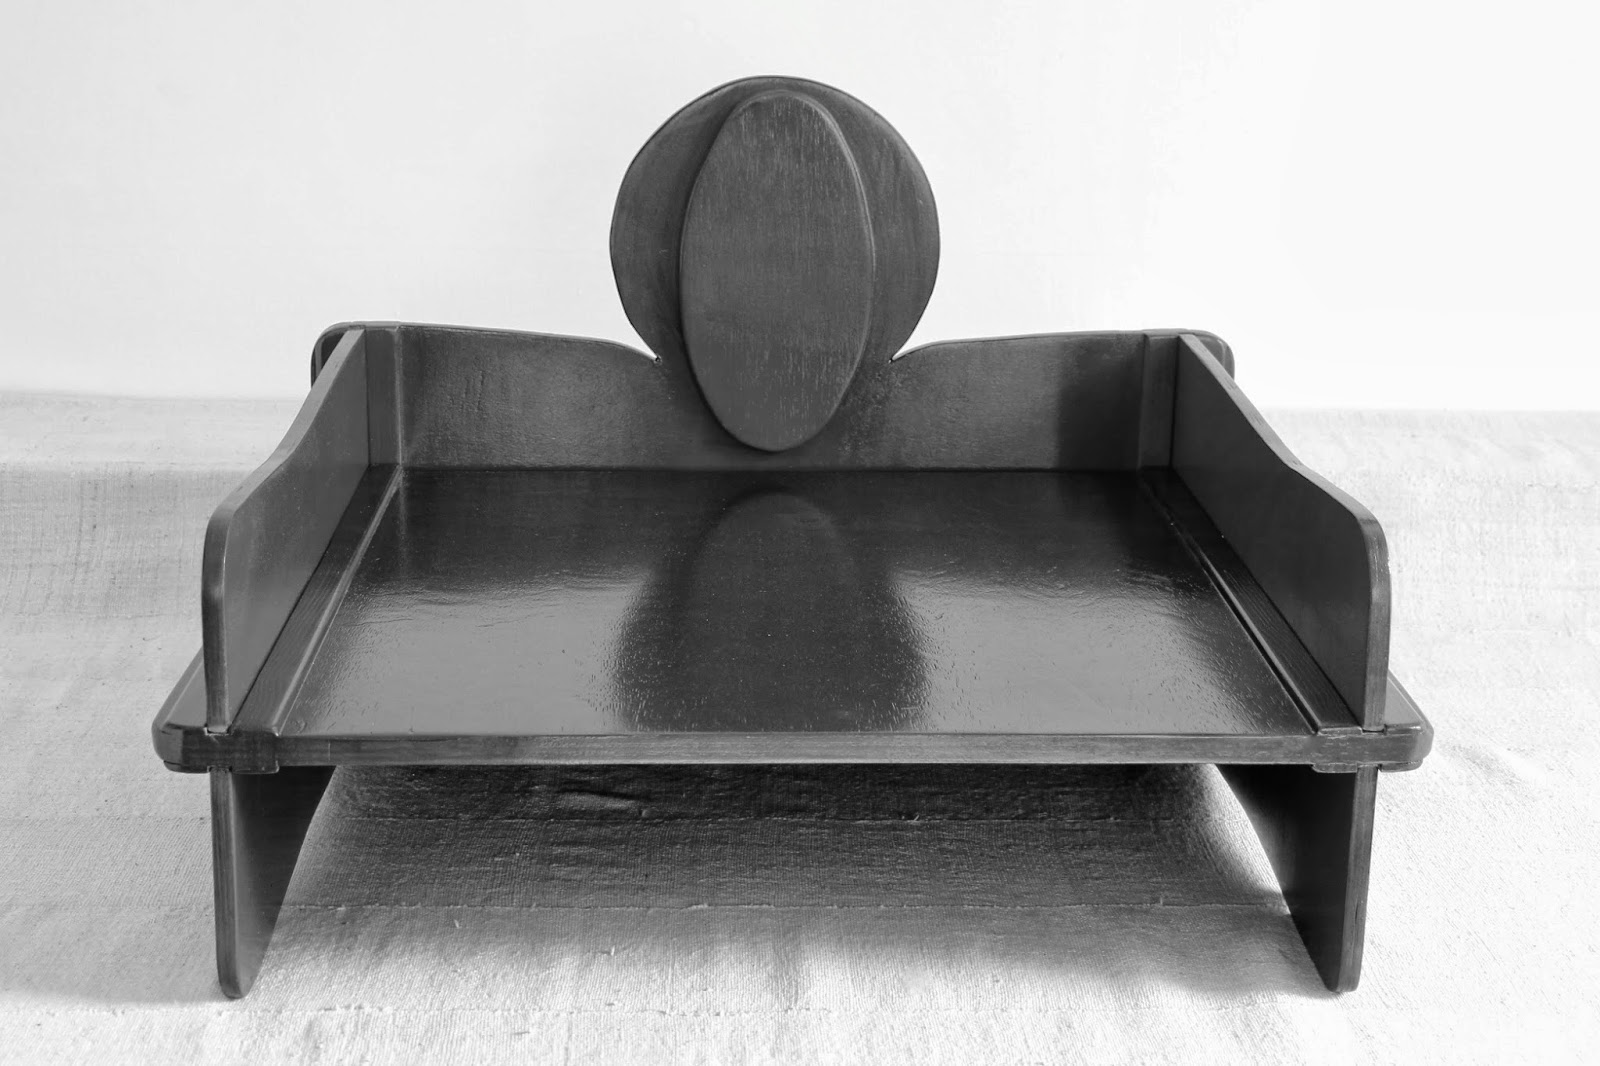 Quint by Design: The Meditation Chair